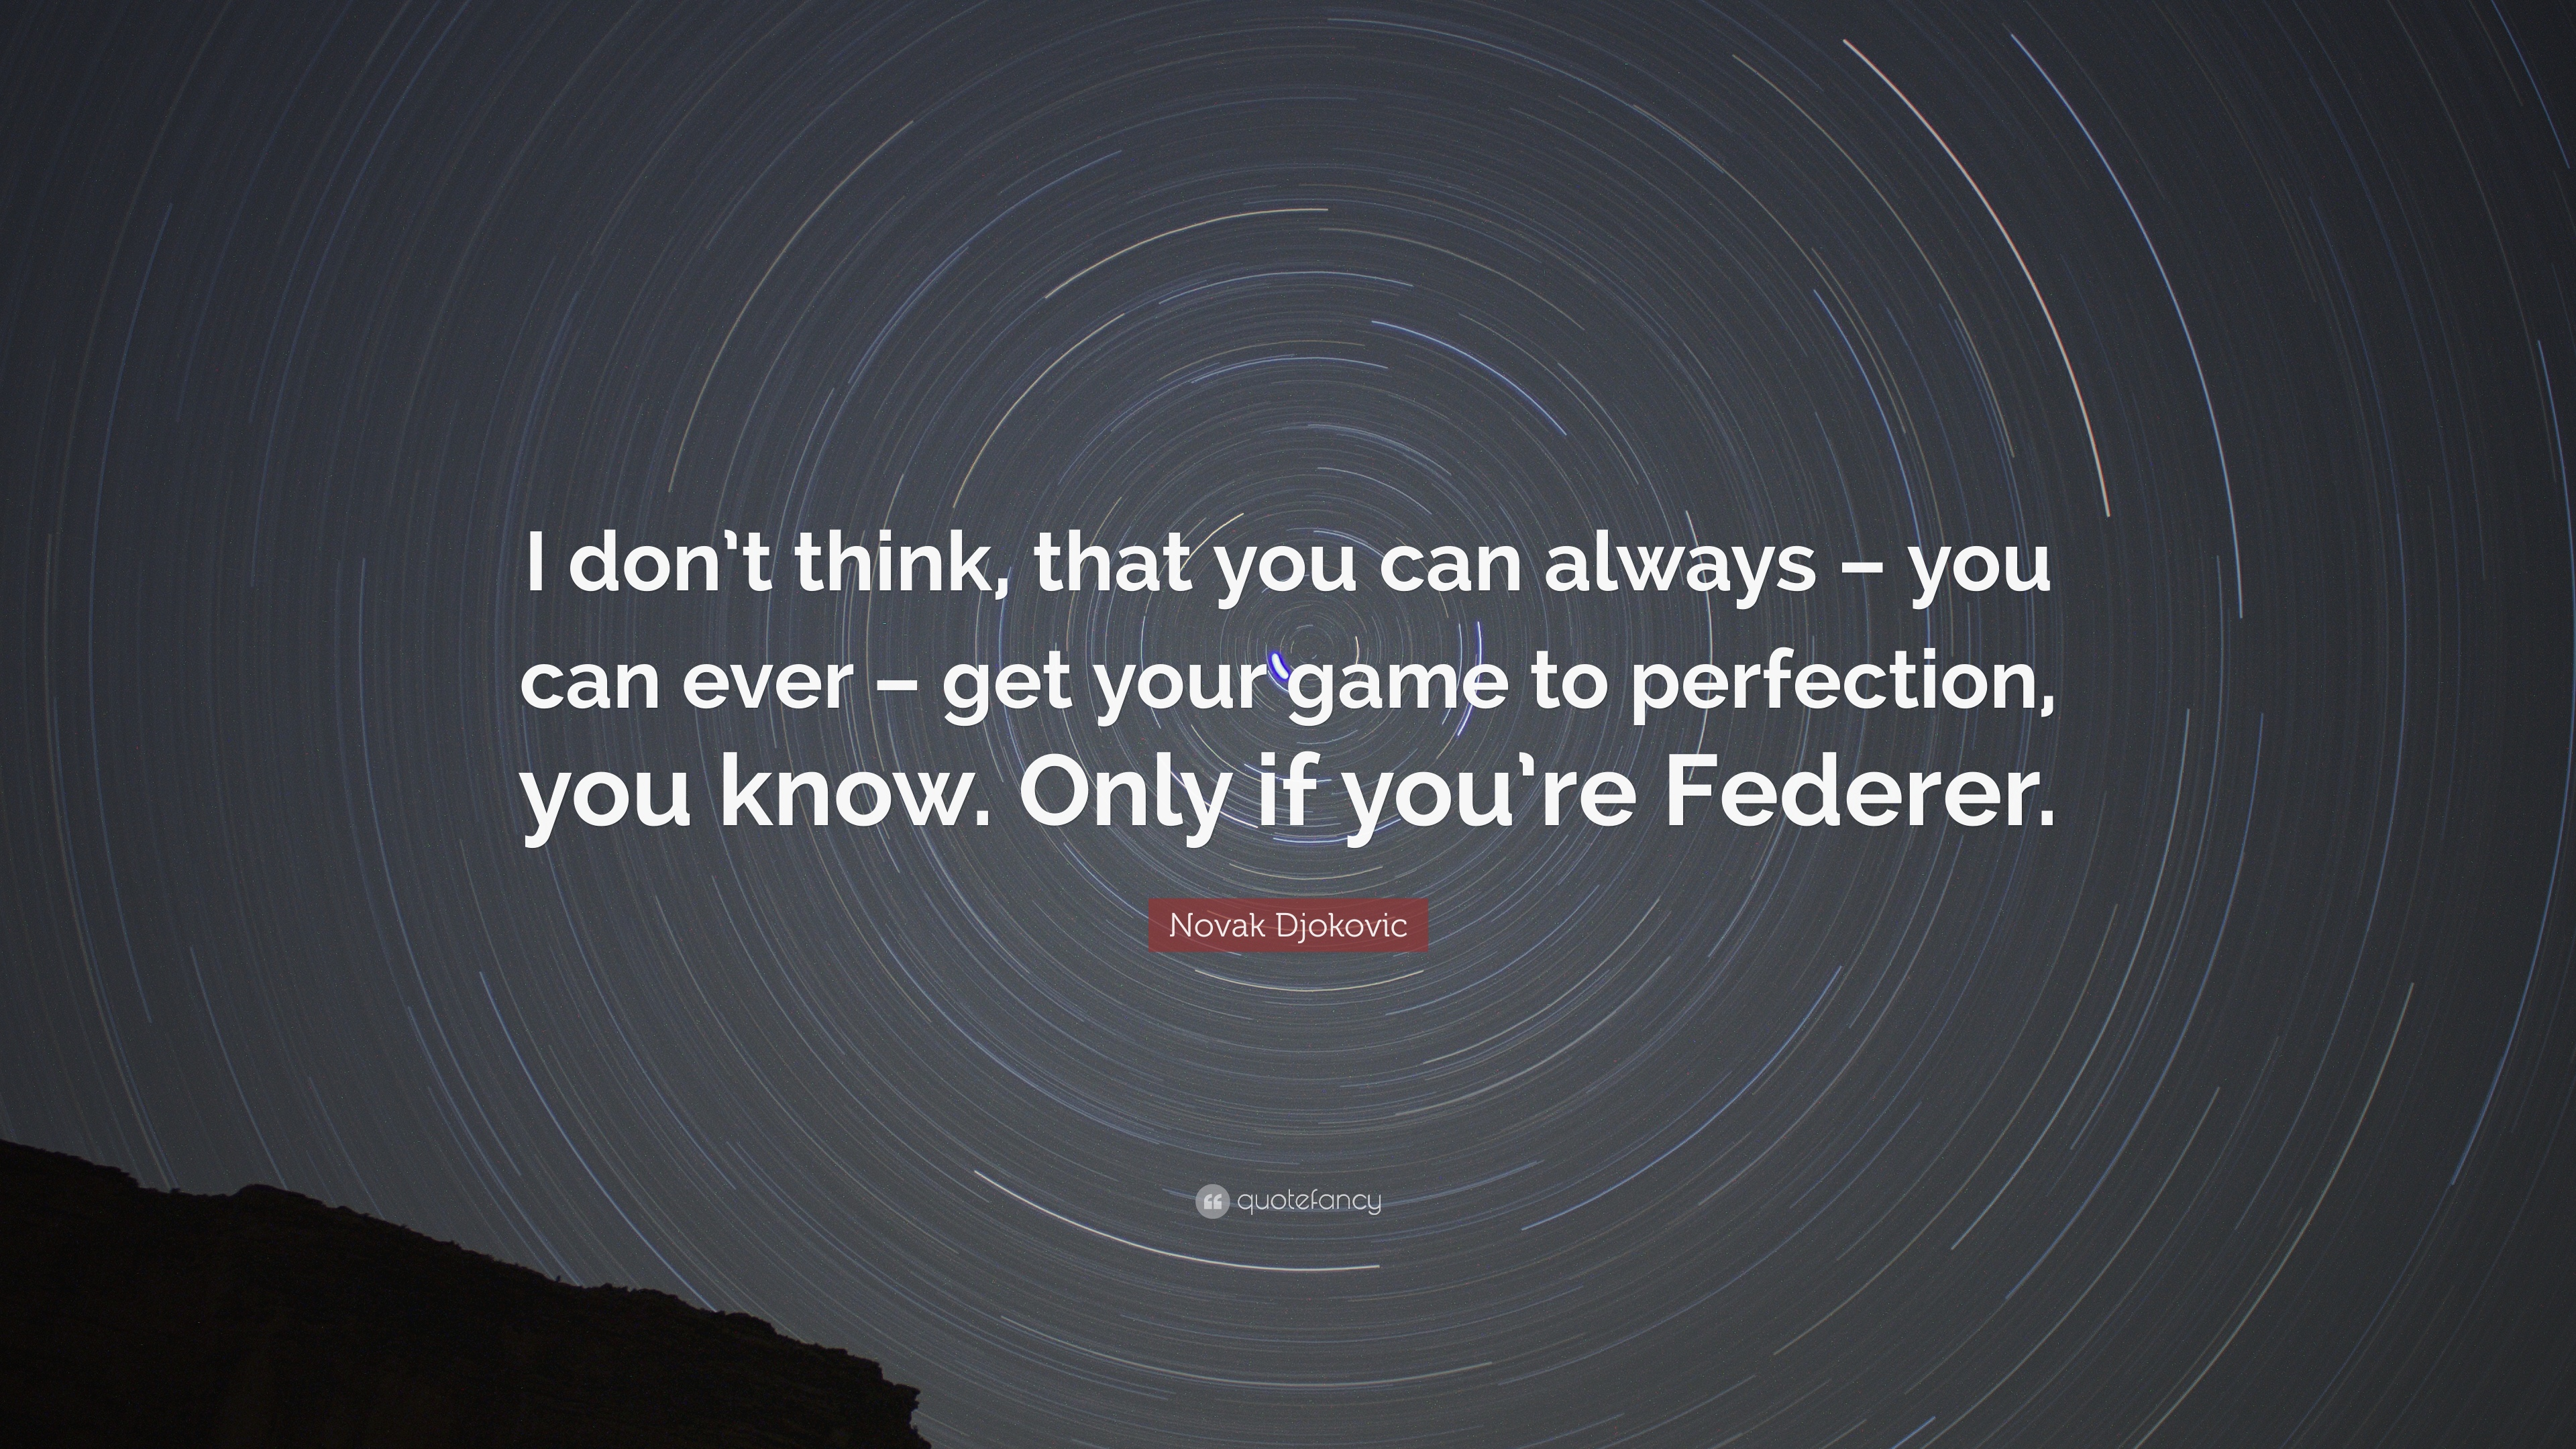 Novak Djokovic Quote I Don T Think That You Can Always You Can Ever Get Your Game To Perfection You Know Only If You Re Federer 10 Wallpapers Quotefancy